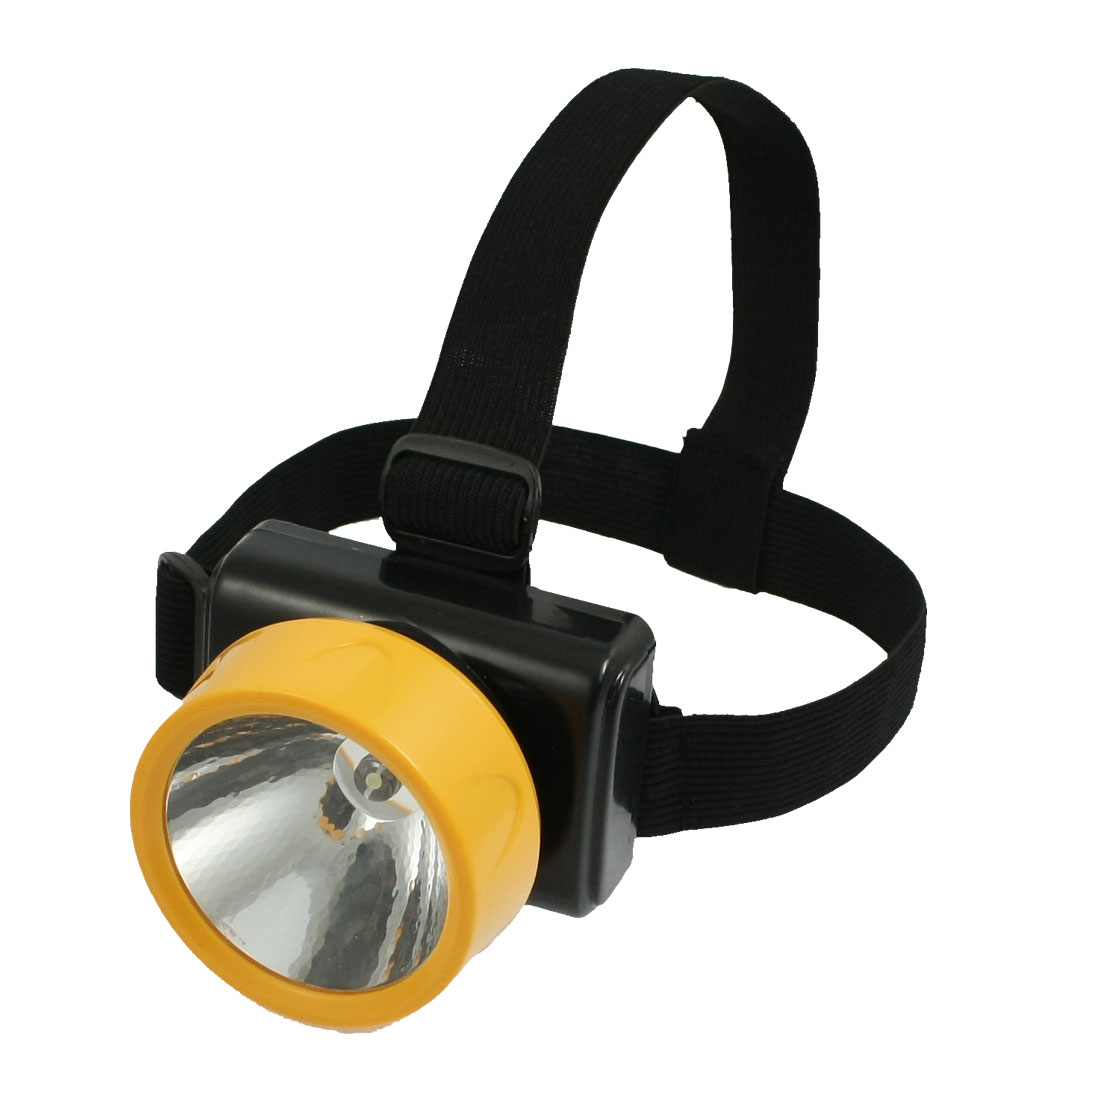 Black Yellow Elastic Headstrap Battery Power LED Adjustable White Light Headlamp